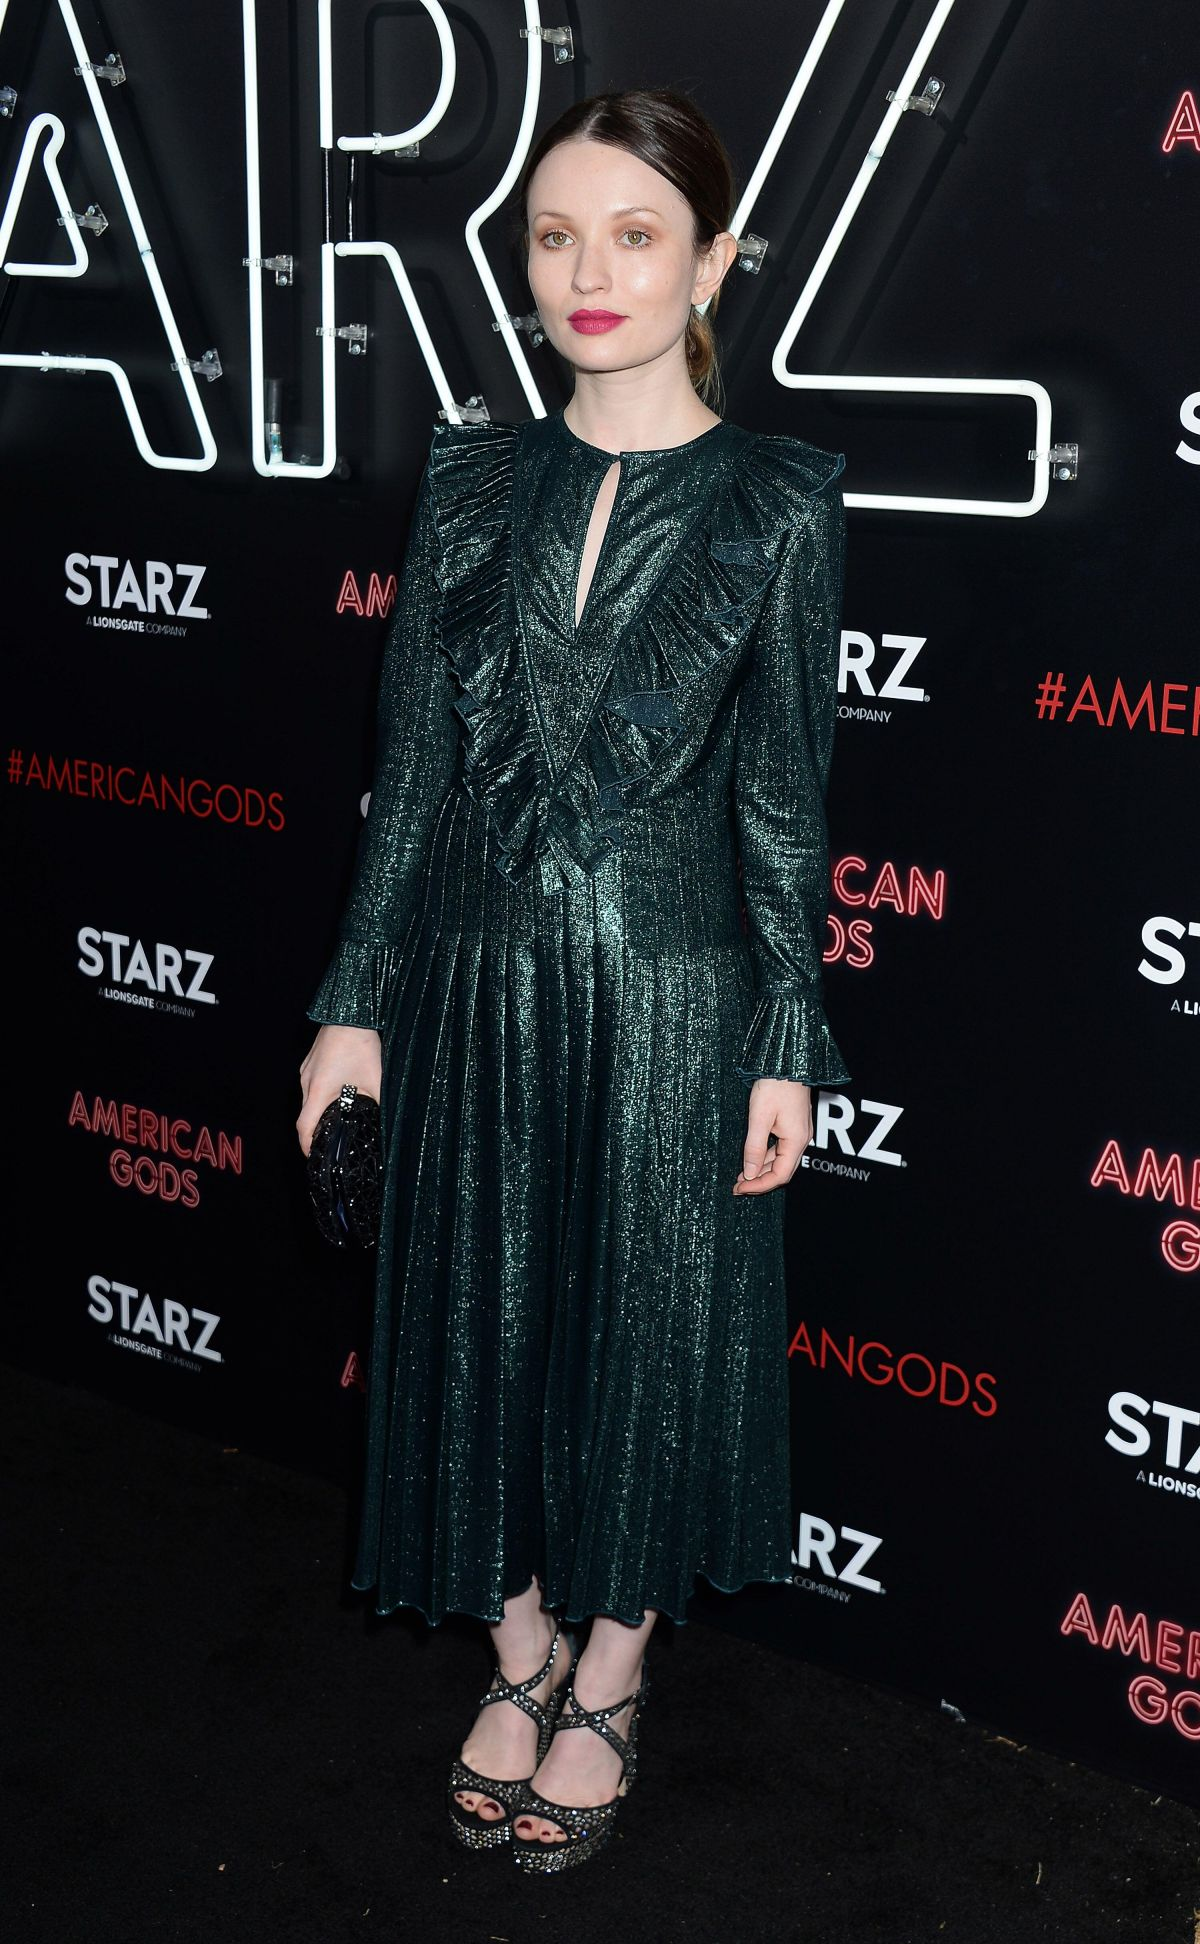 emily browning 2017 - photo #35